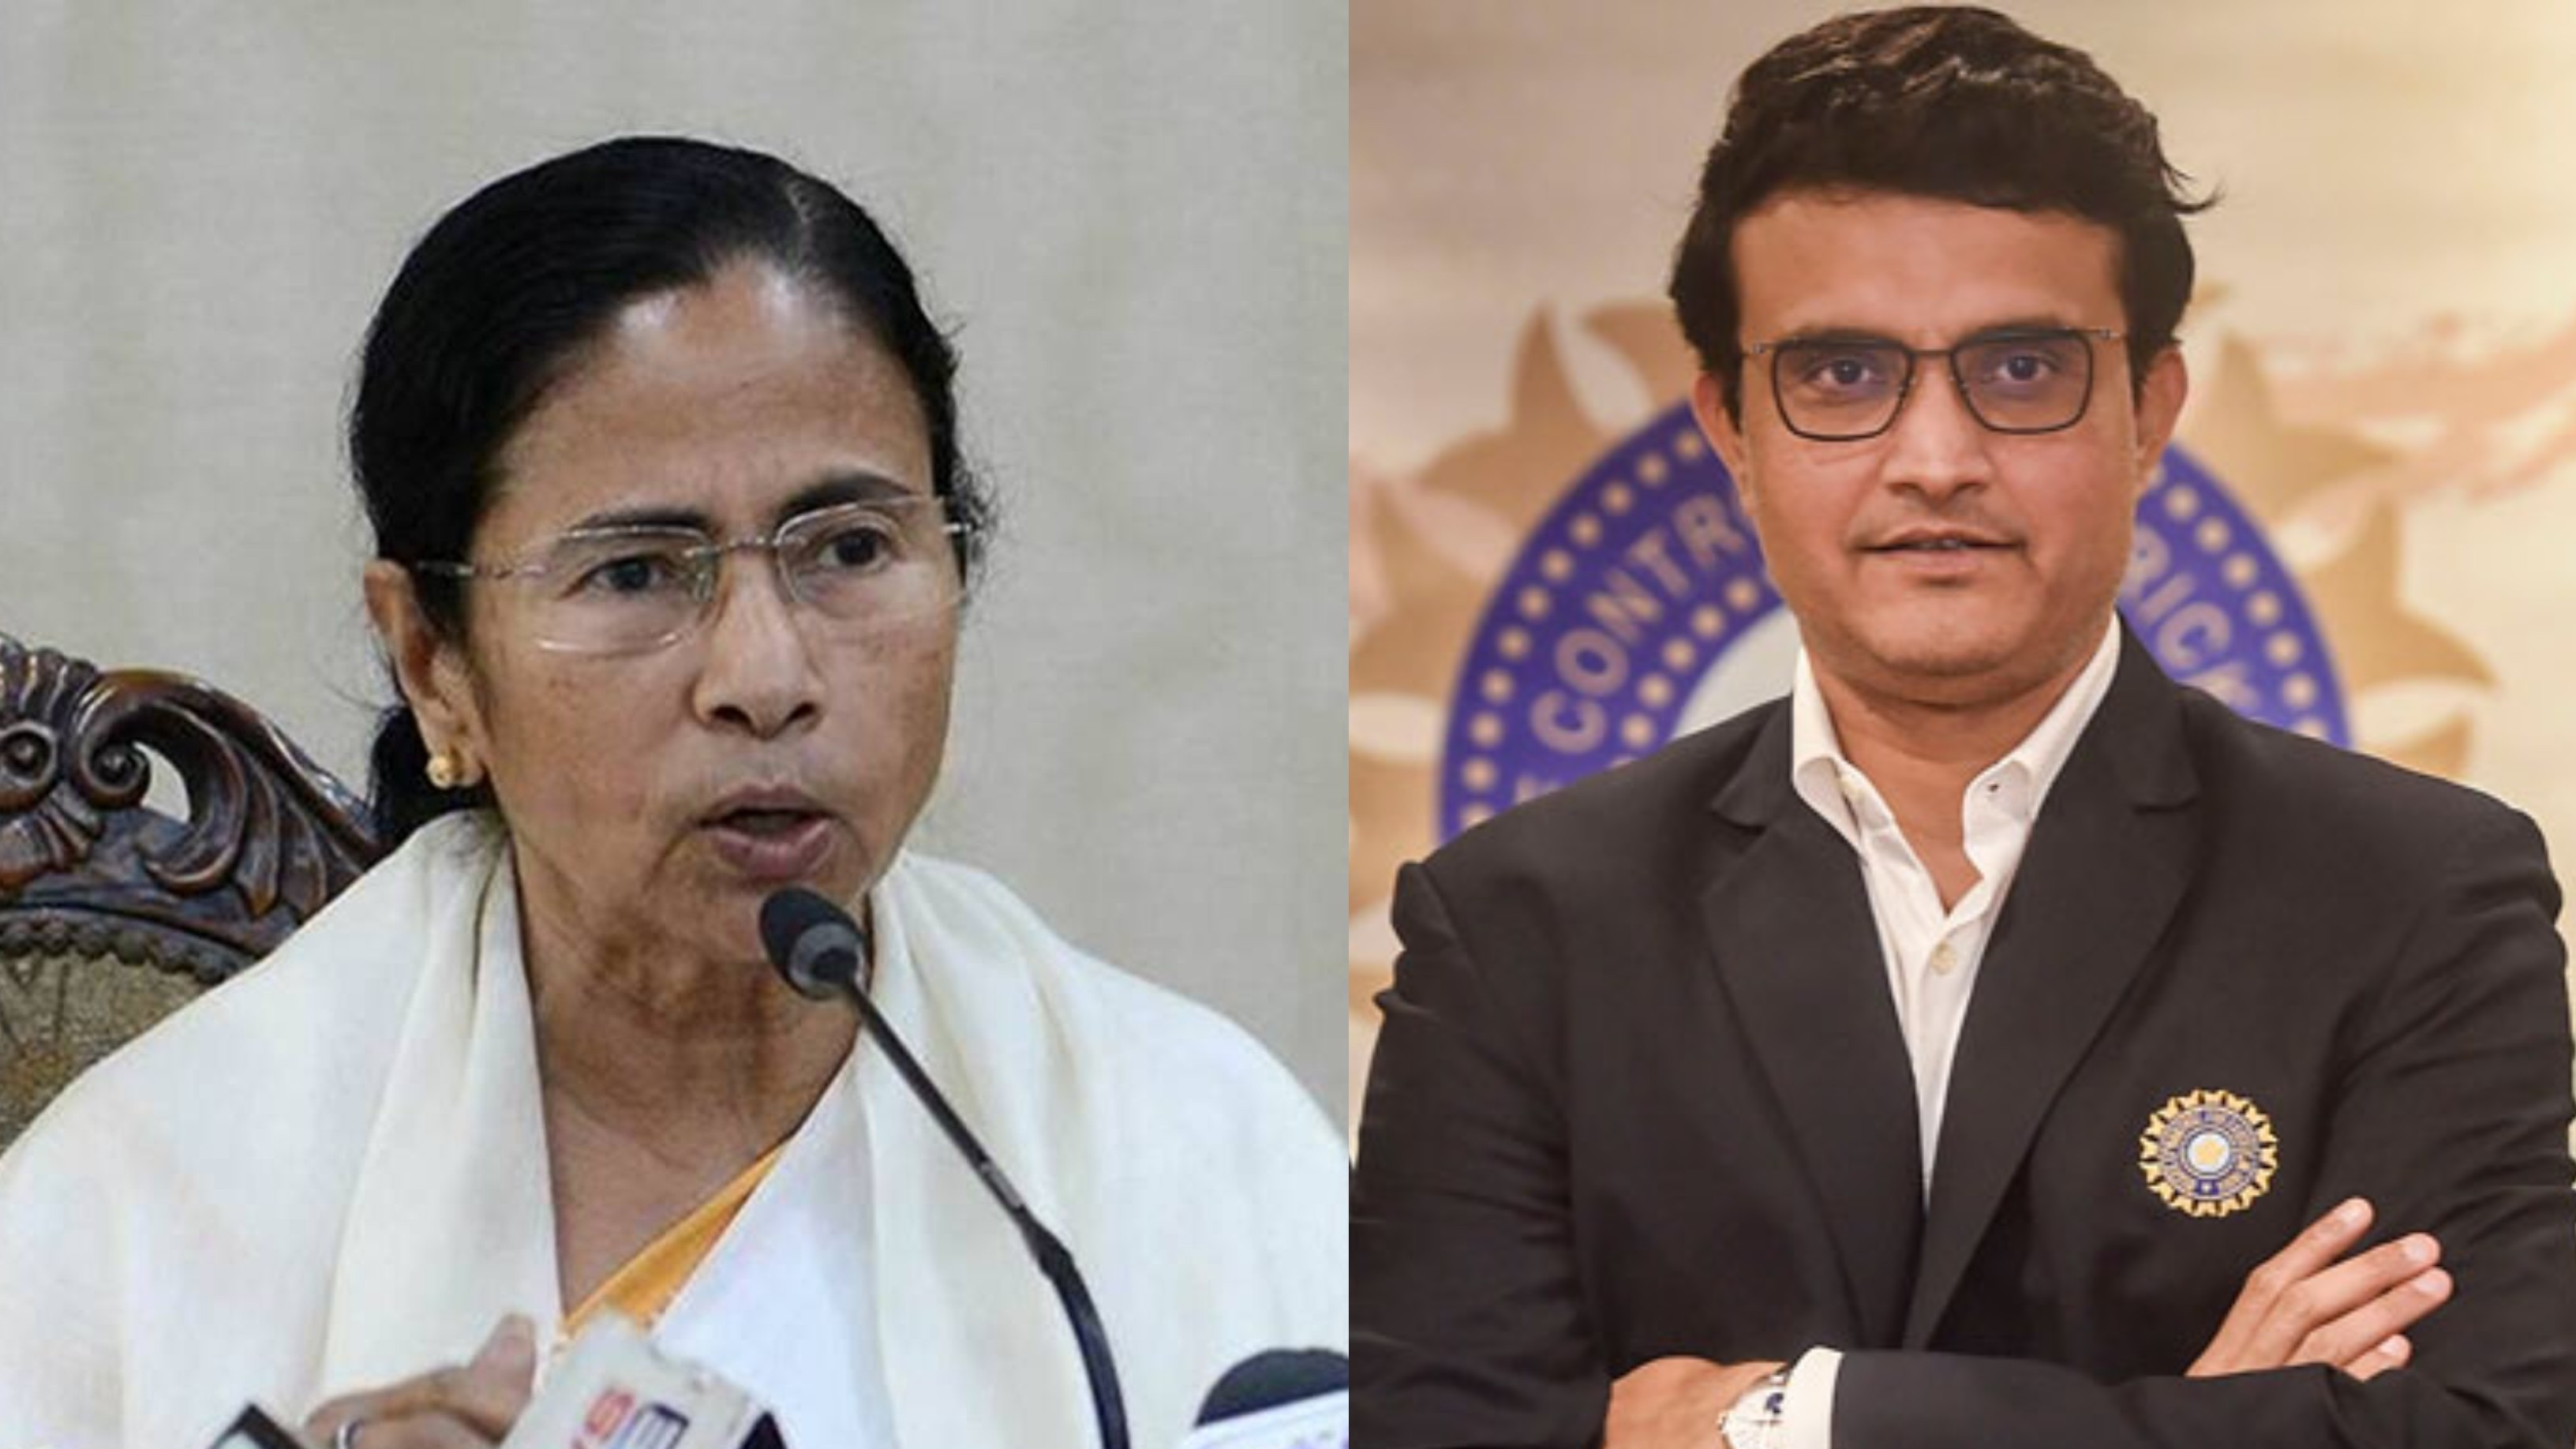 Bengal CM Mamata Banerjee wishes Sourav Ganguly a speedy recovery